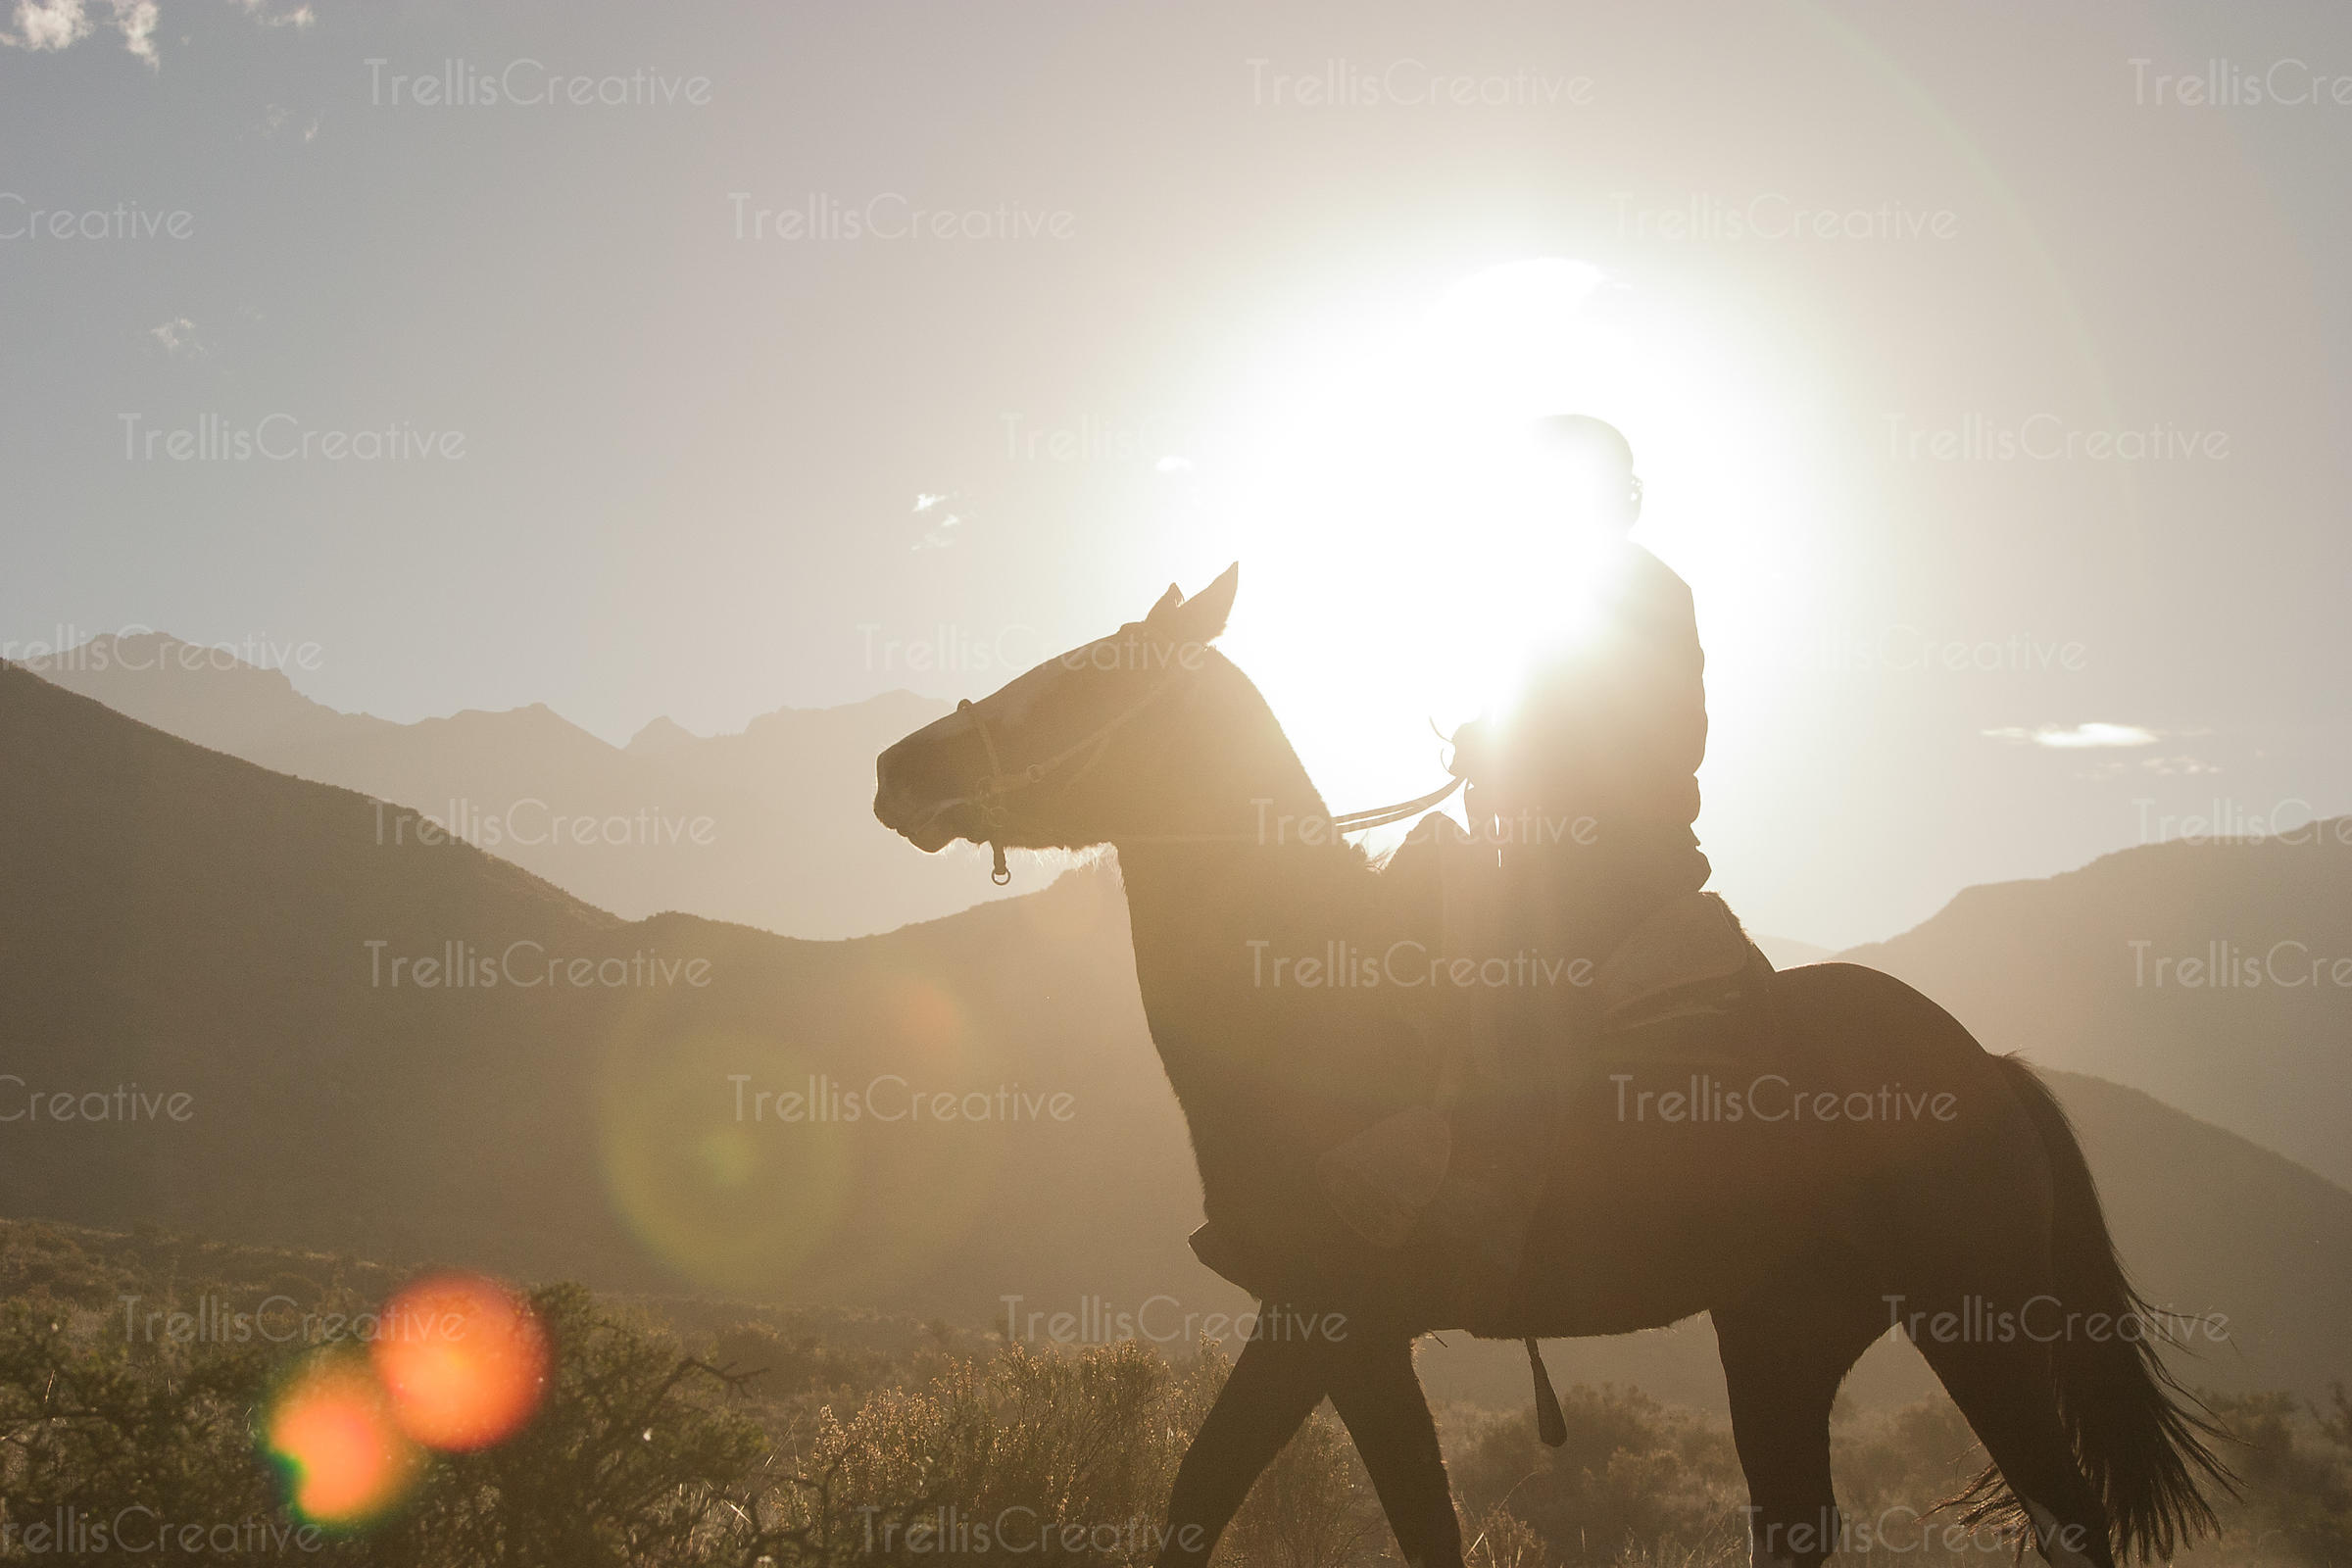 Horse and rider with sun obliterating detail of the rider.  Sillouette of horse is seen against mountains and sunlight.